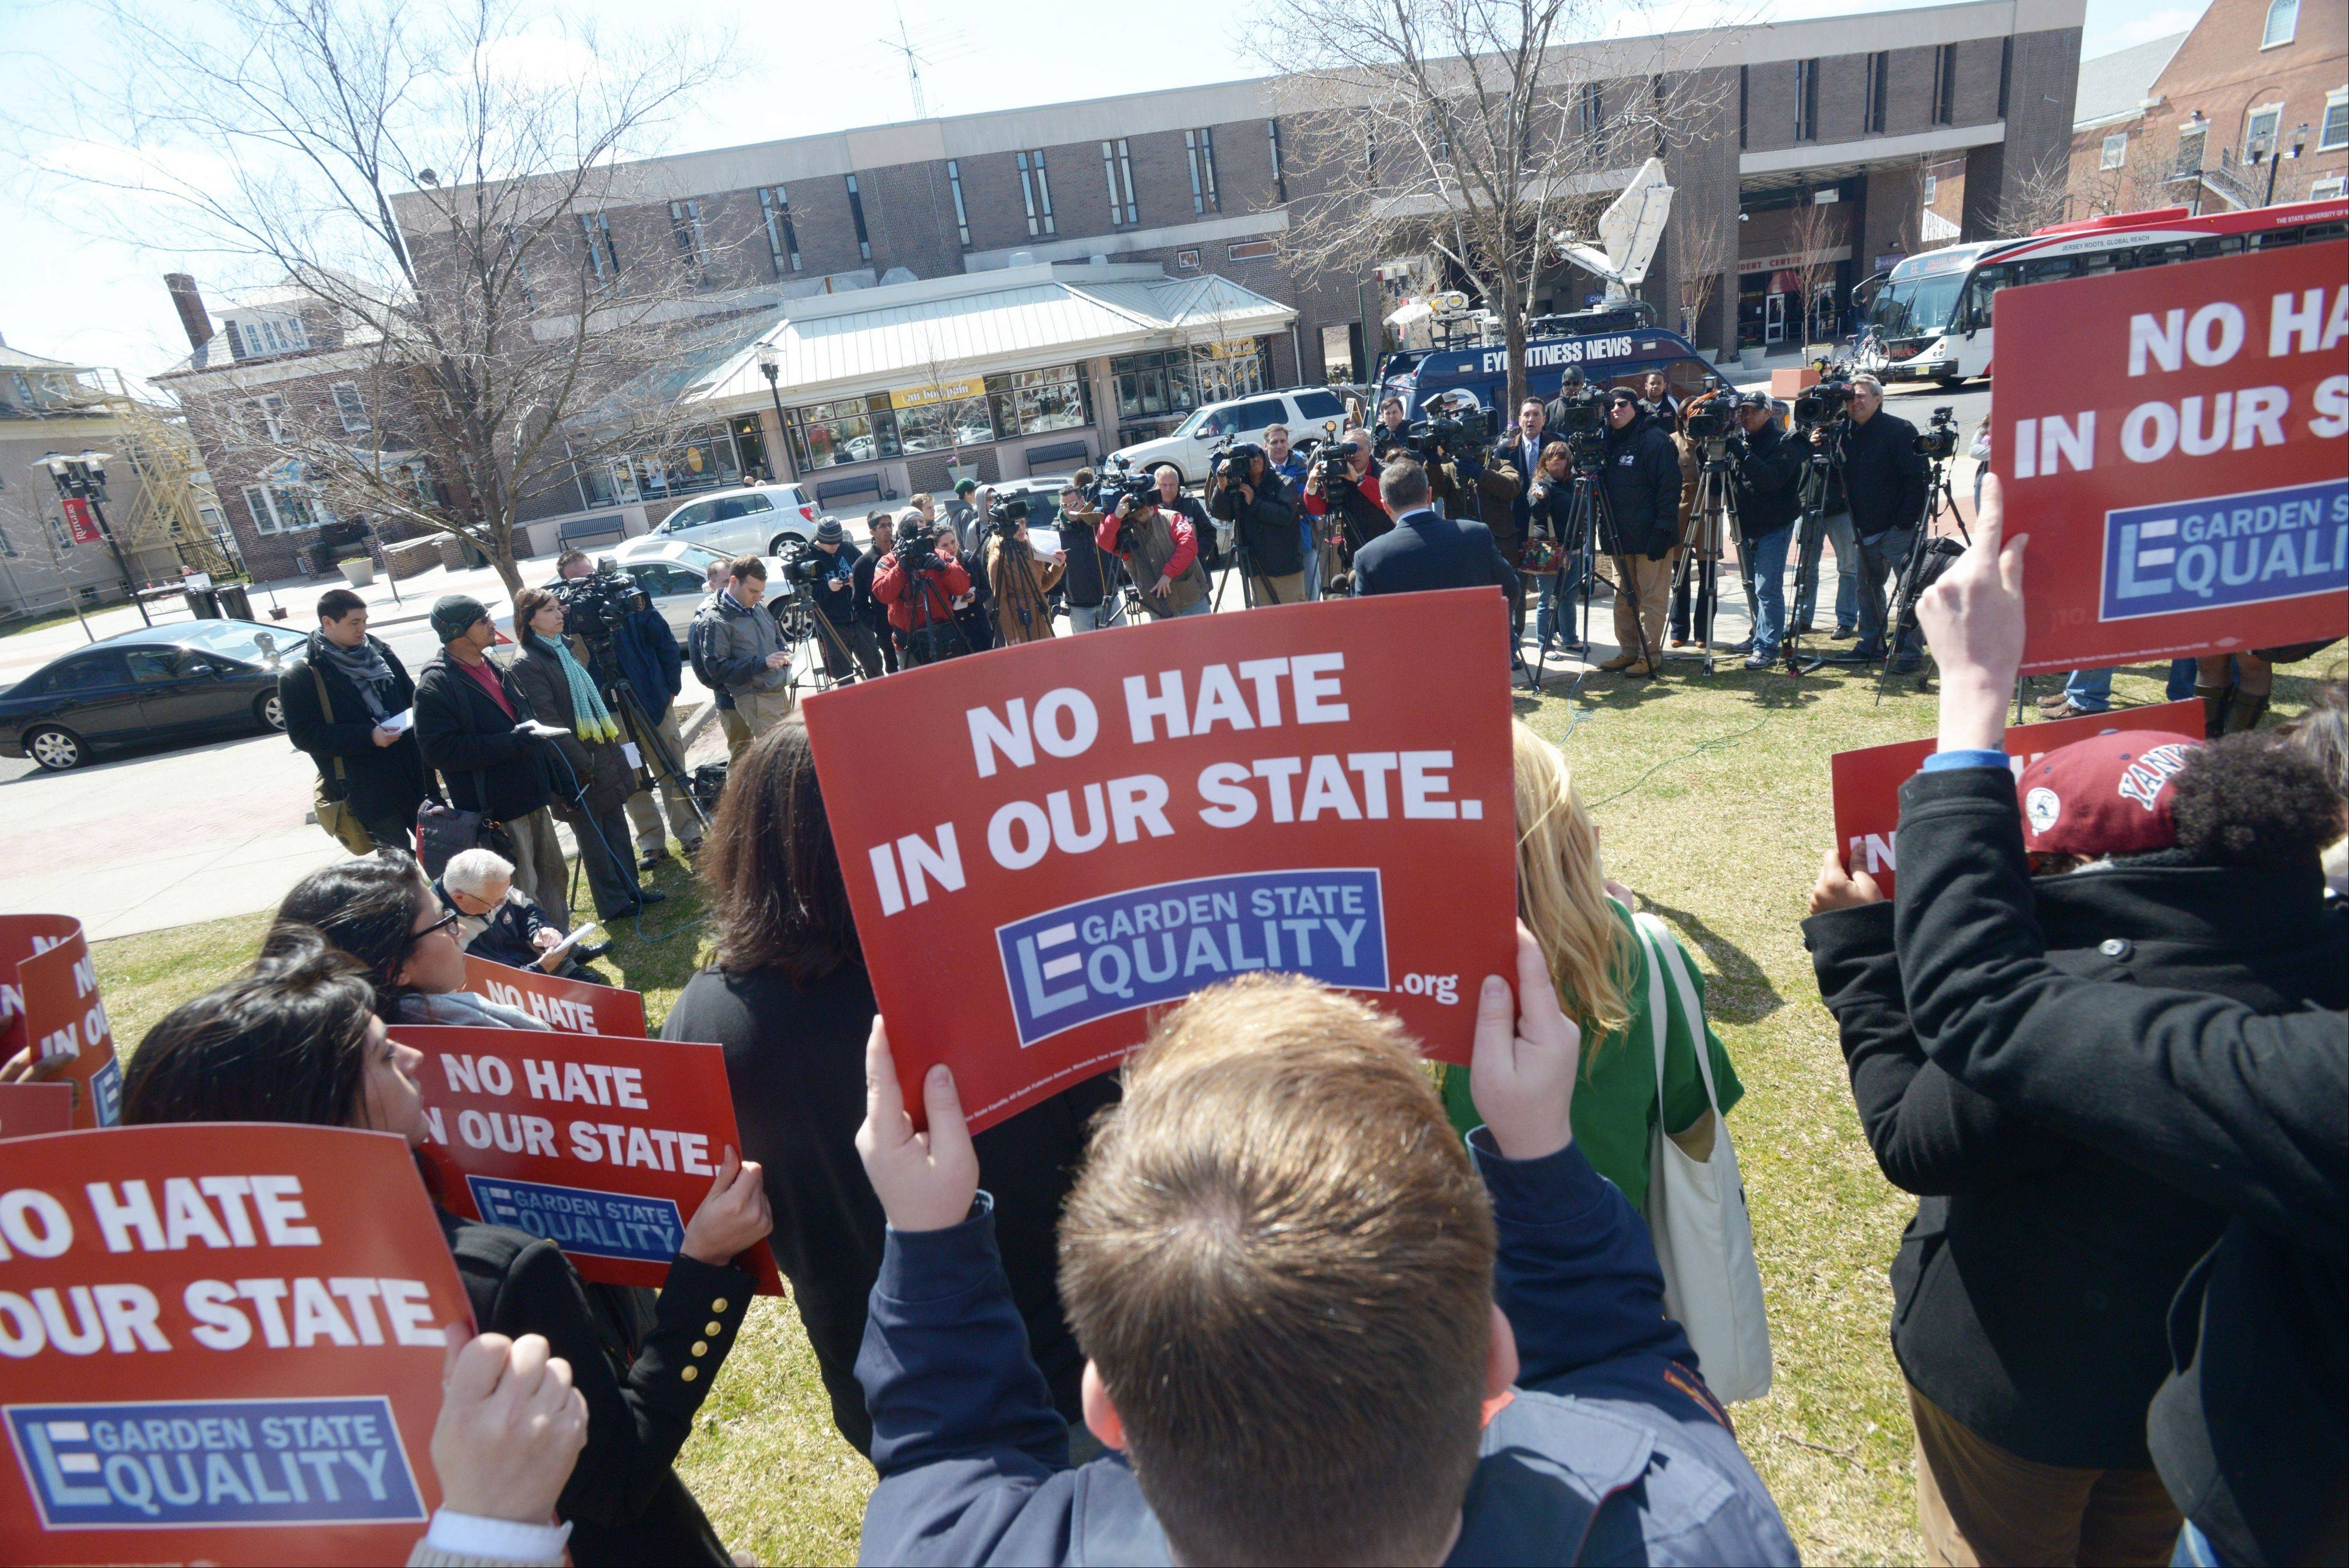 Troy Stevenson, Executive Director of Garden State Equality, organized a demo in New Brunswick, N.J., questioning why the firing of Mike Rice, the coach of Rutgers' men's basketball team, didn't happen sooner.